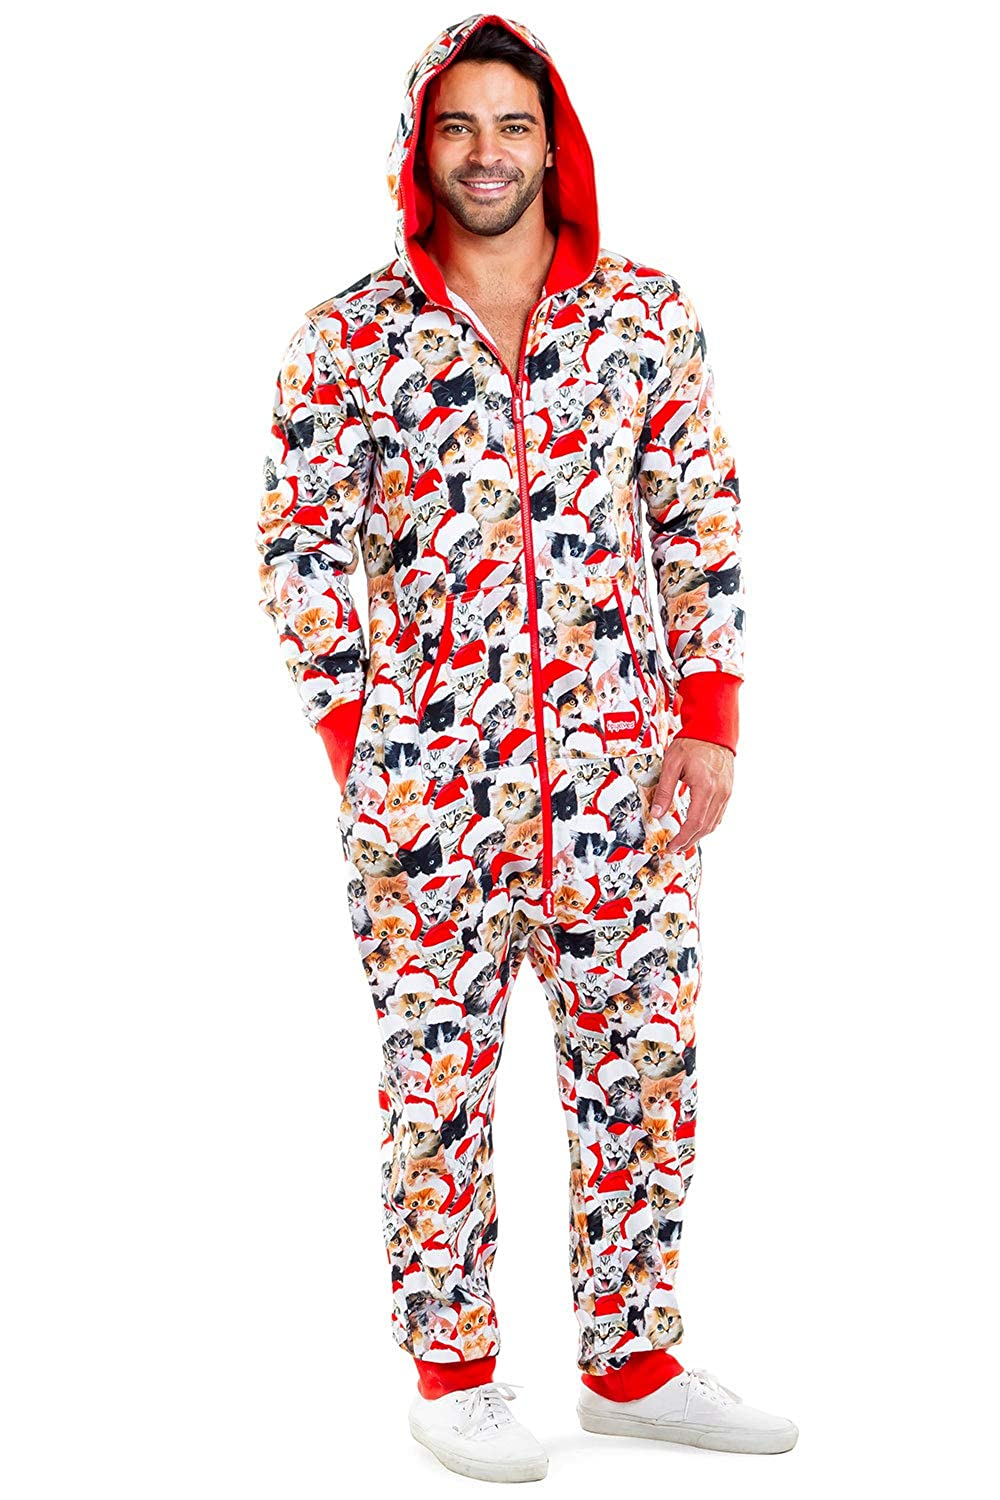 Christmas Jumpsuit Womens.Women S And Men S Unisex Meowy Catmus Ugly Christmas Sweater Party Jumpsuit Adult Christmas Cat Onesie